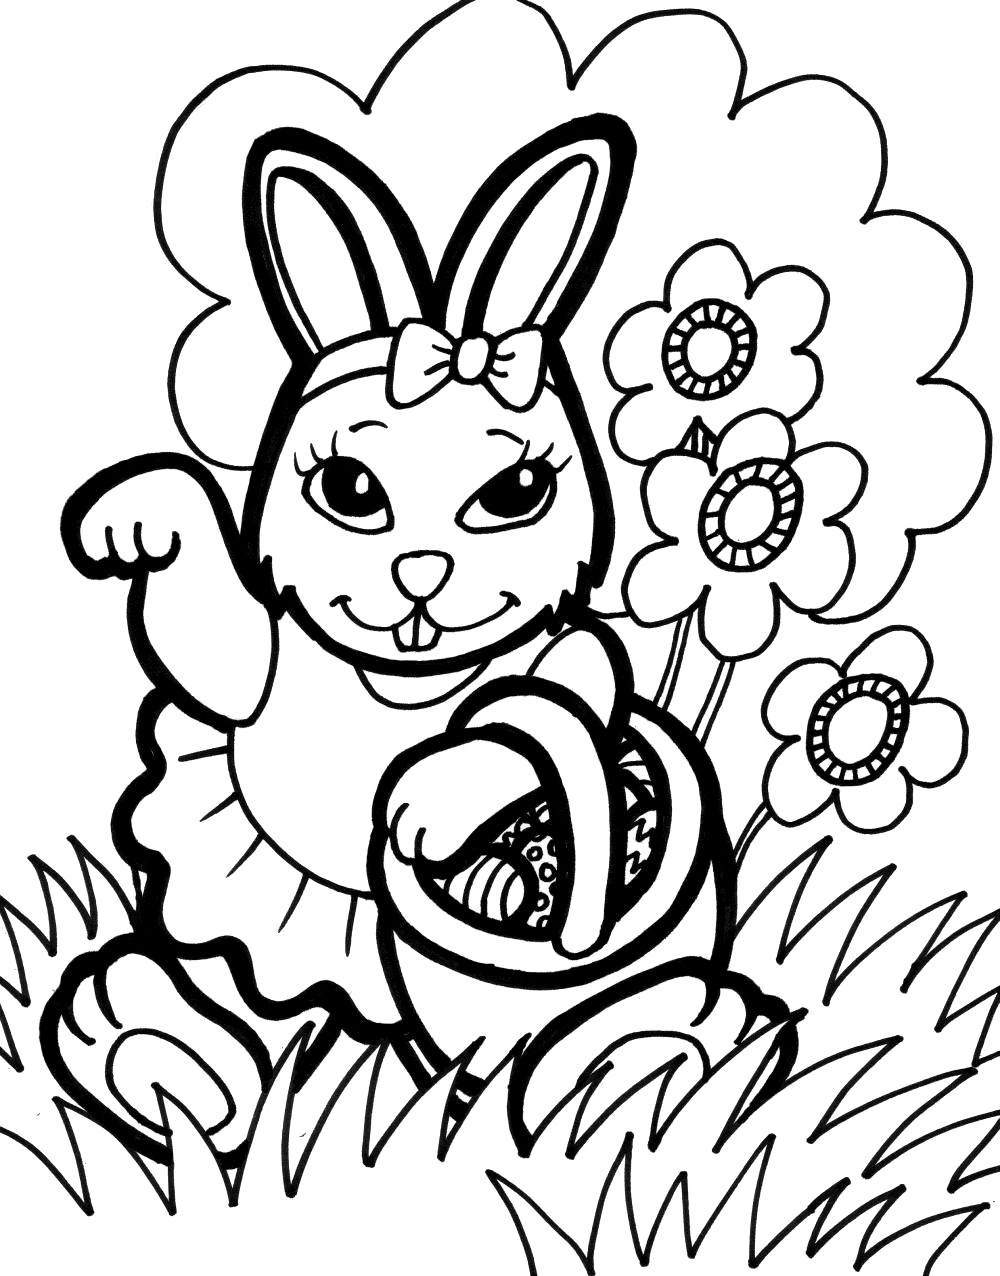 Free coloring pages bunny - Bunny Coloring Pages Best For Kids